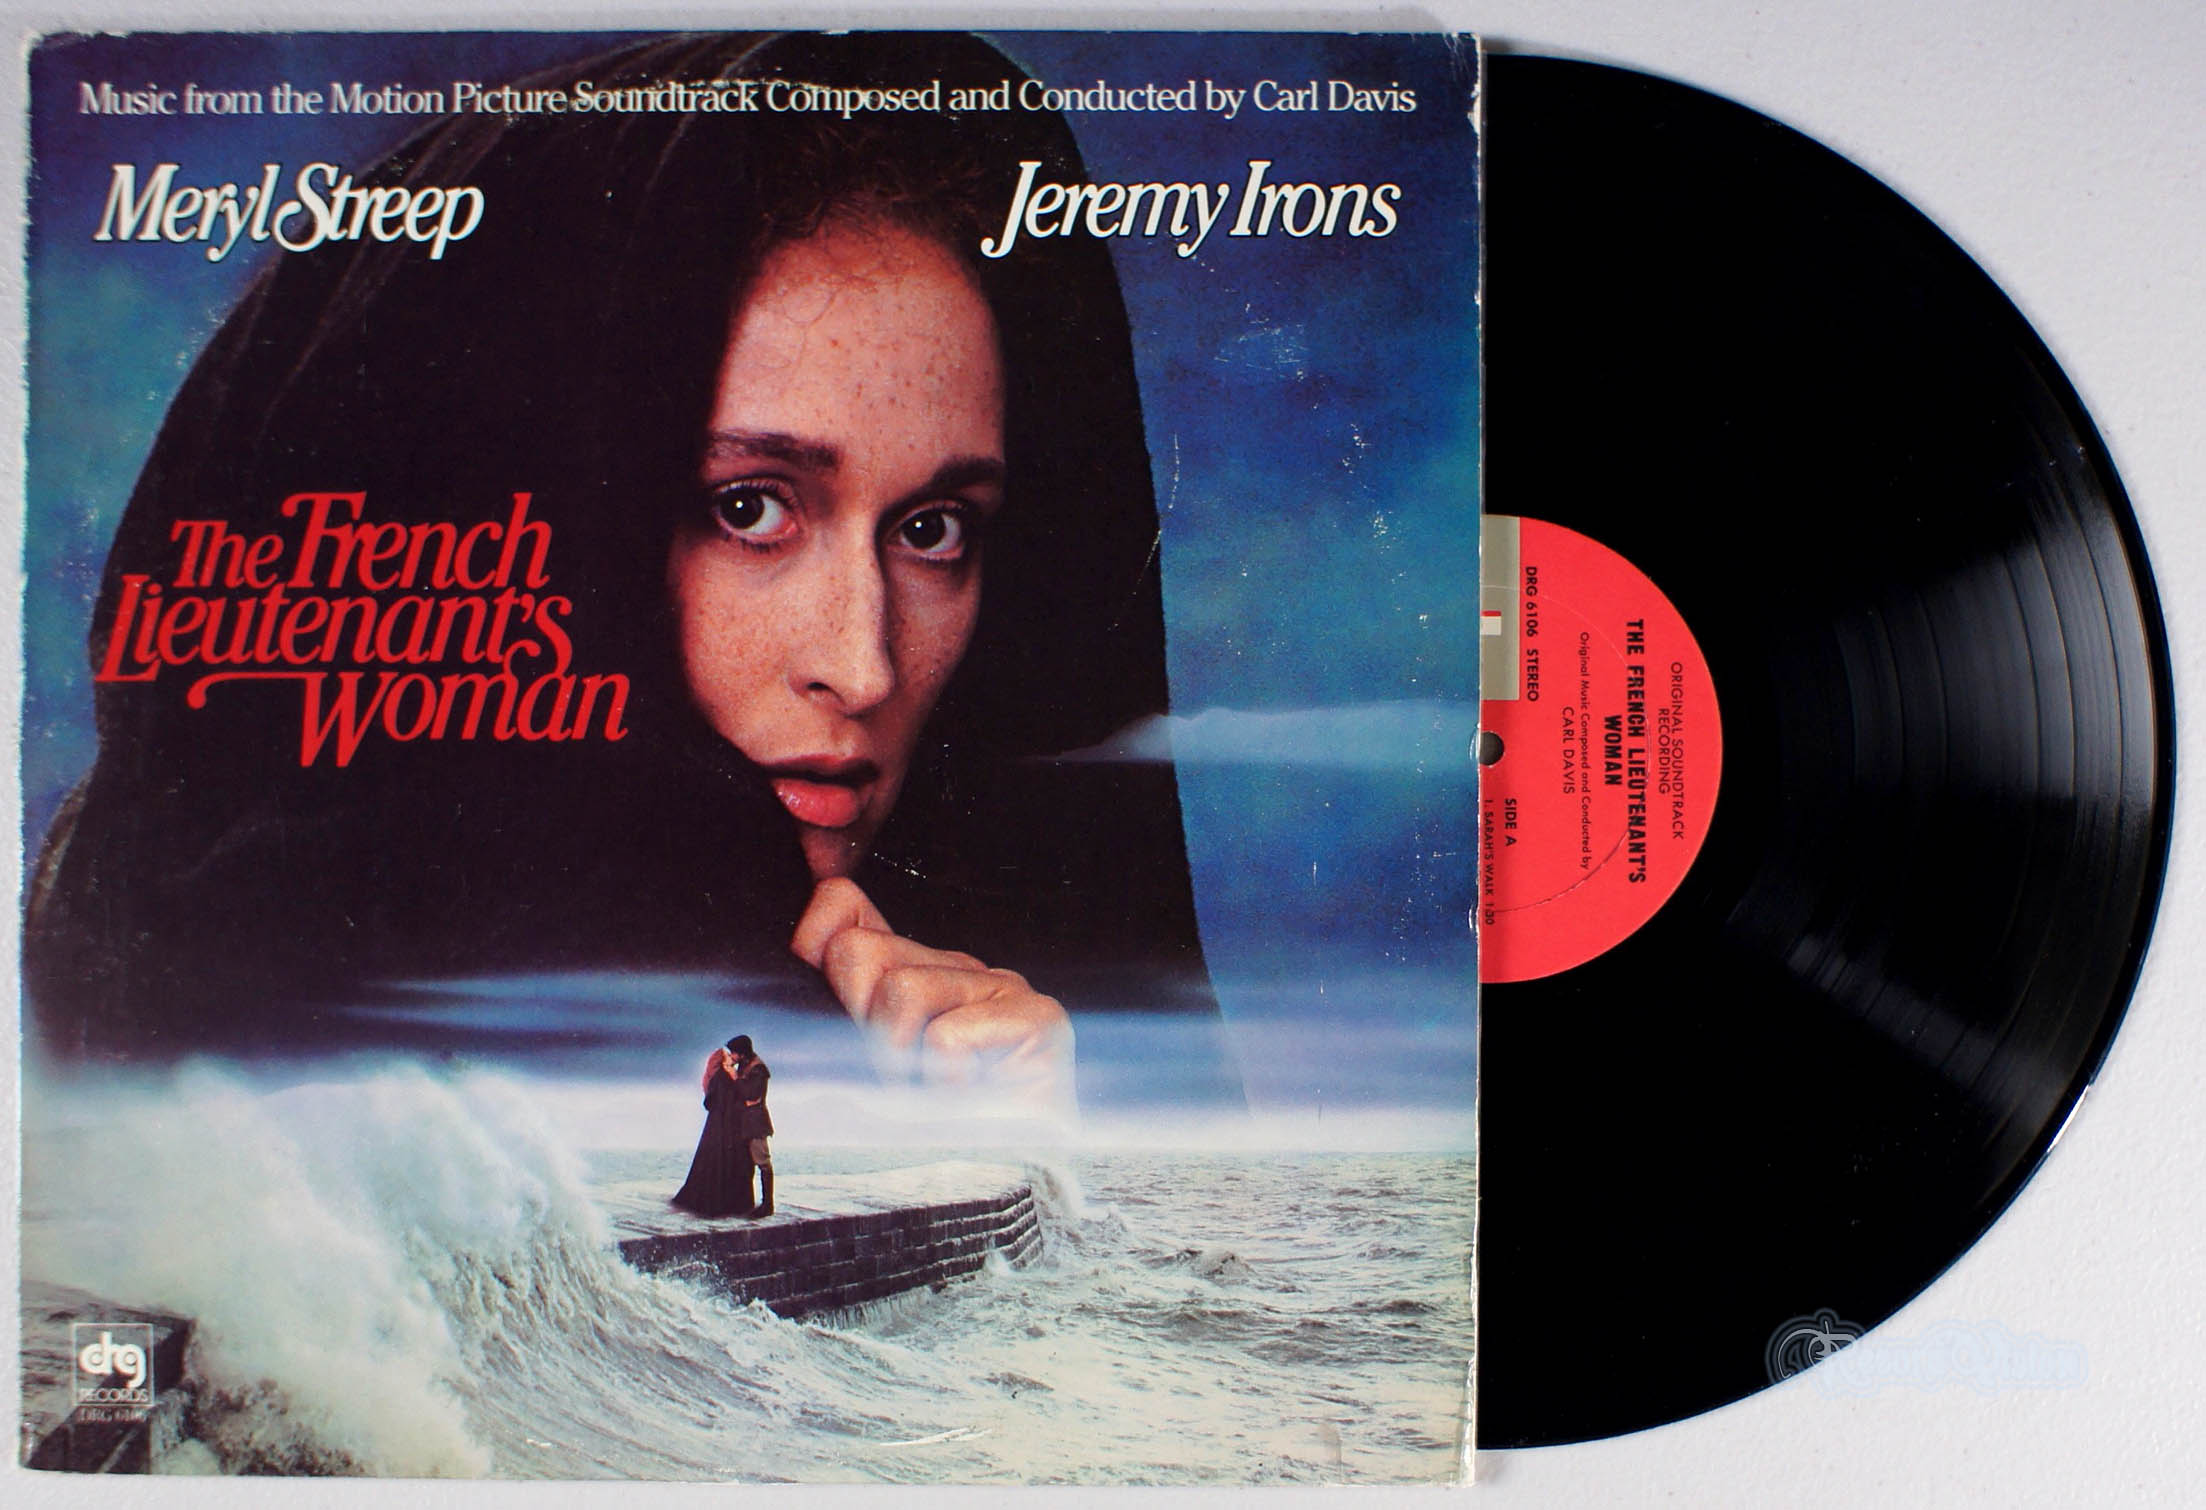 ASSORTED (SOUNDTRACK) - French Lieutenant's Woman - LP